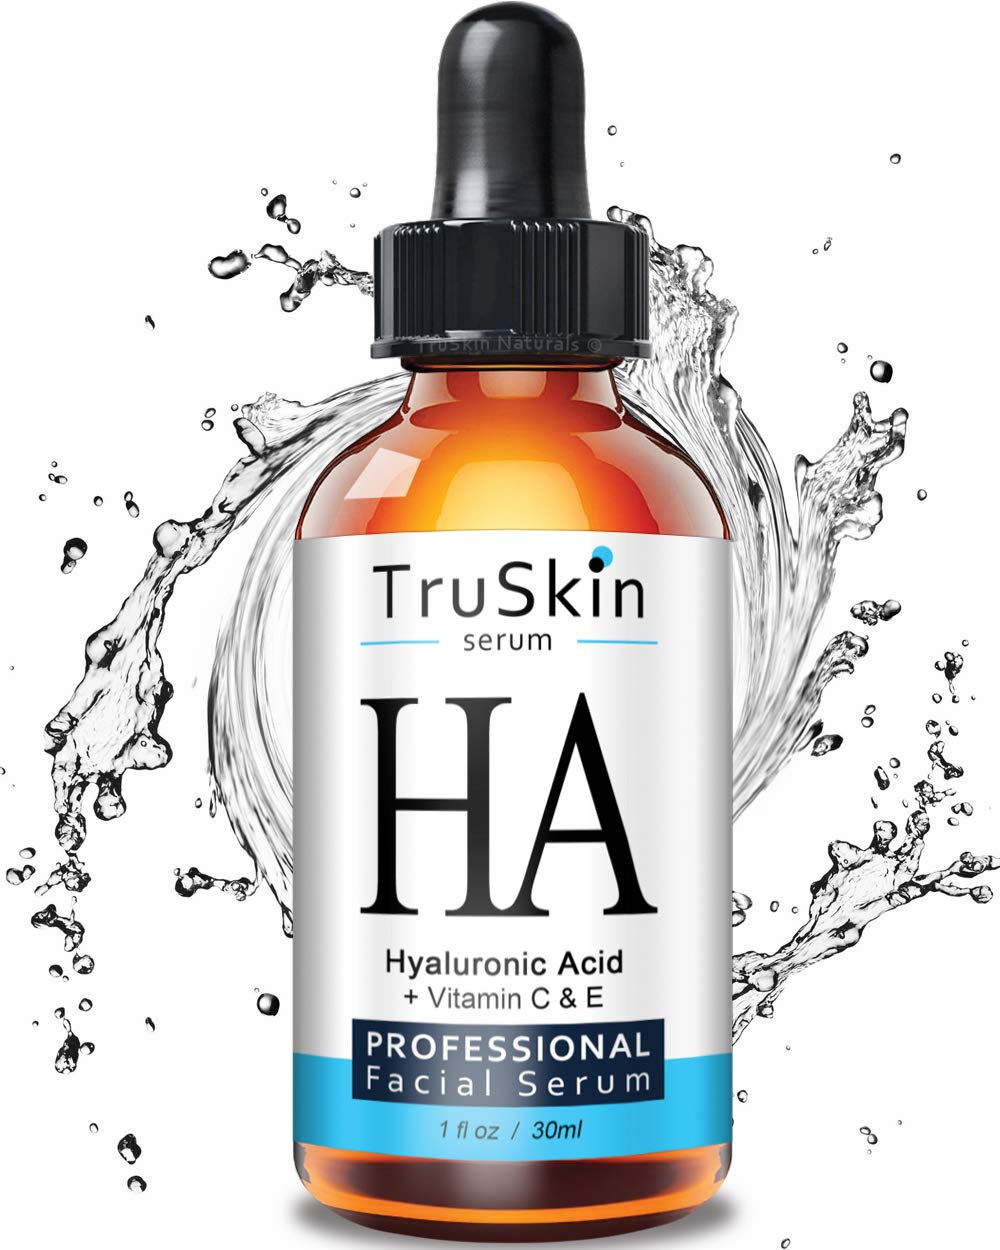 The BEST Hyaluronic Acid Serum for Skin & Face with Vitamin C, E, Organic Jojoba Oil, Natural Aloe and MSM - Deeply Hydrates & Plumps Skin to Fill-in Fine Lines & Wrinkles - (1oz) by TruSkin Naturals